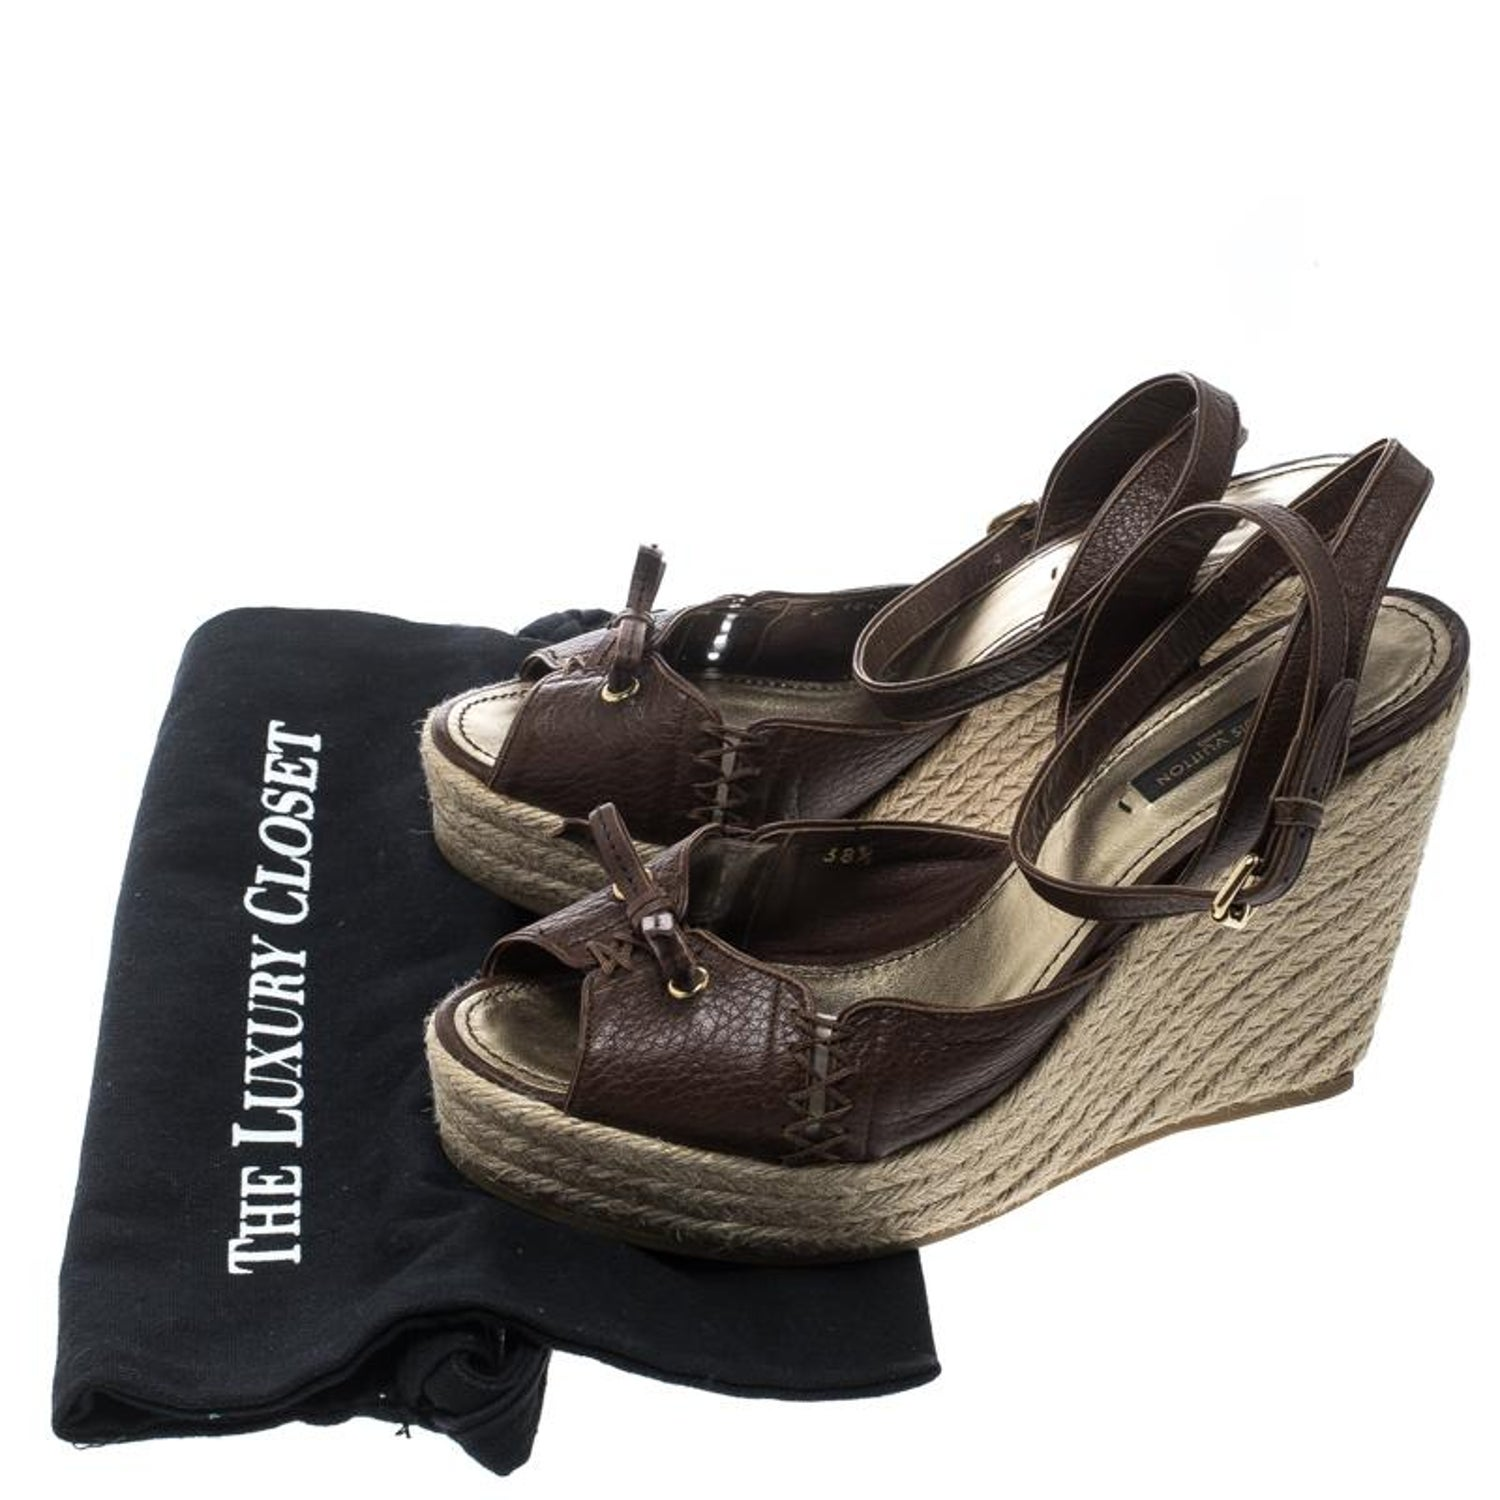 804052c3cb51 Louis Vuitton Brown Leather Ankle Strap Espadrilles Wedges Sandals Size  38.5 For Sale at 1stdibs